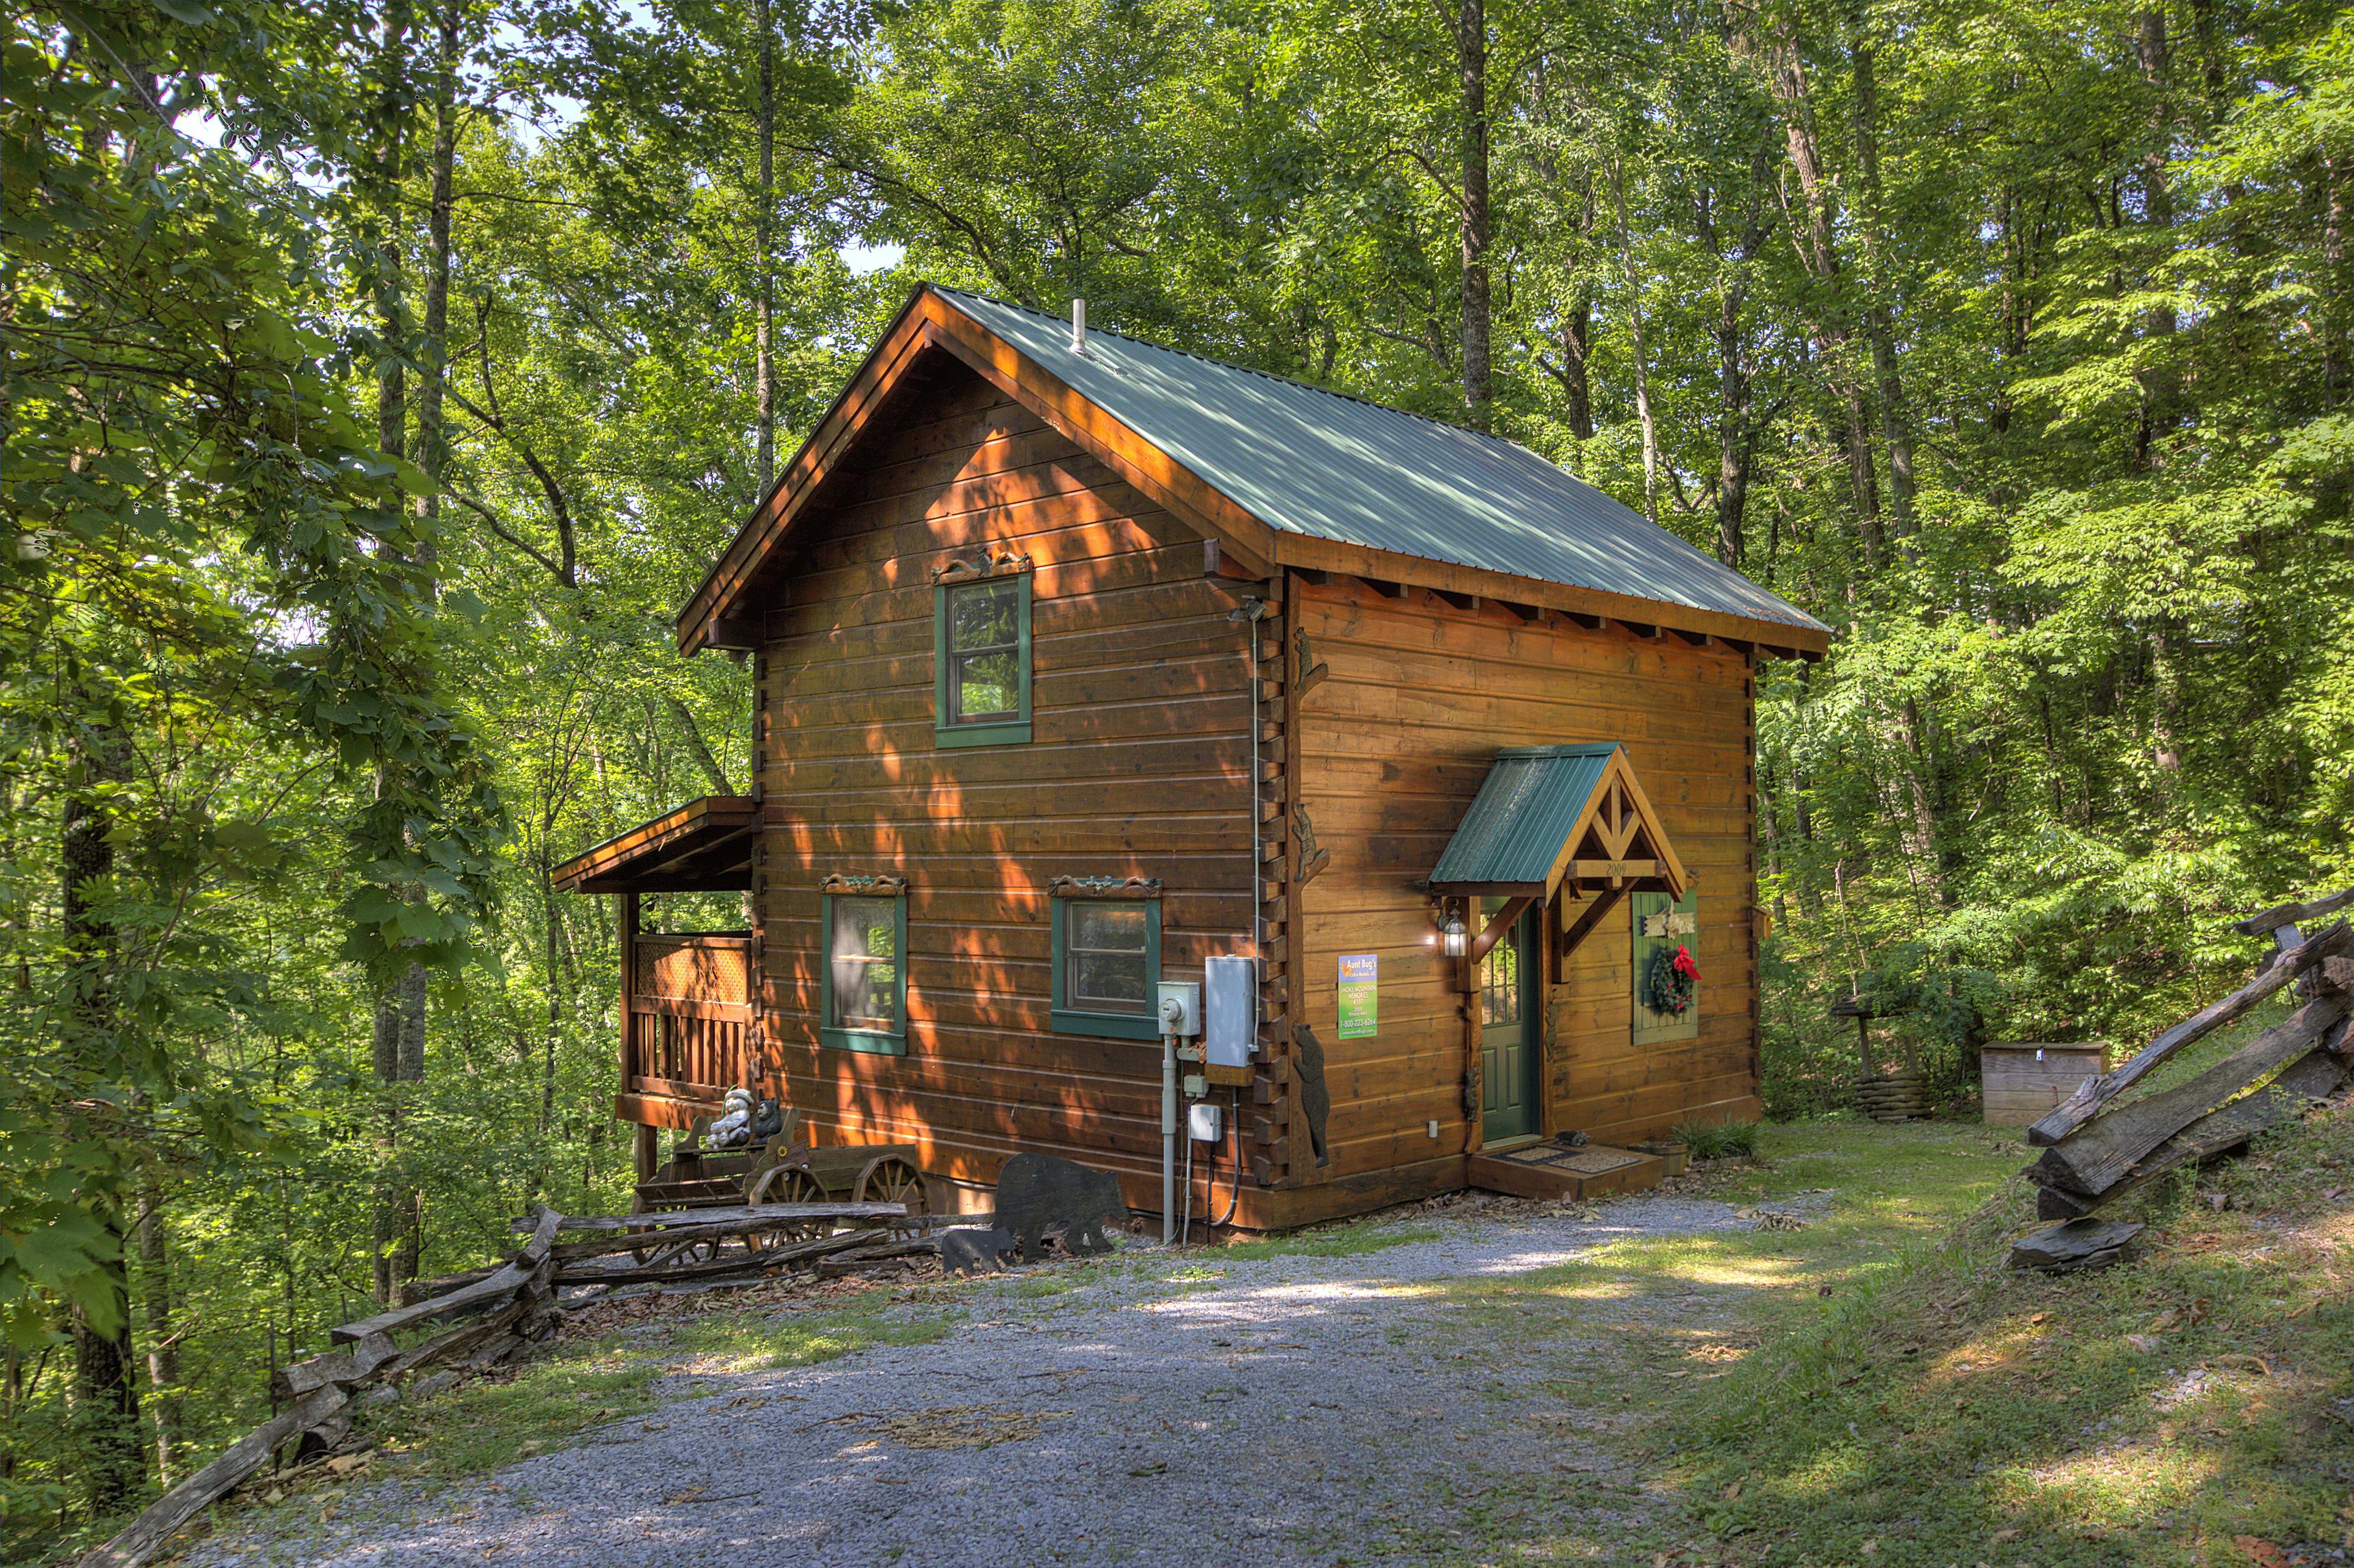 cabins pigeon in friendly tn luxury ga mi va cabin chestnut smoky rentals mountains creek forge tenn pet gaylord galax tennessee gatlinburg secluded